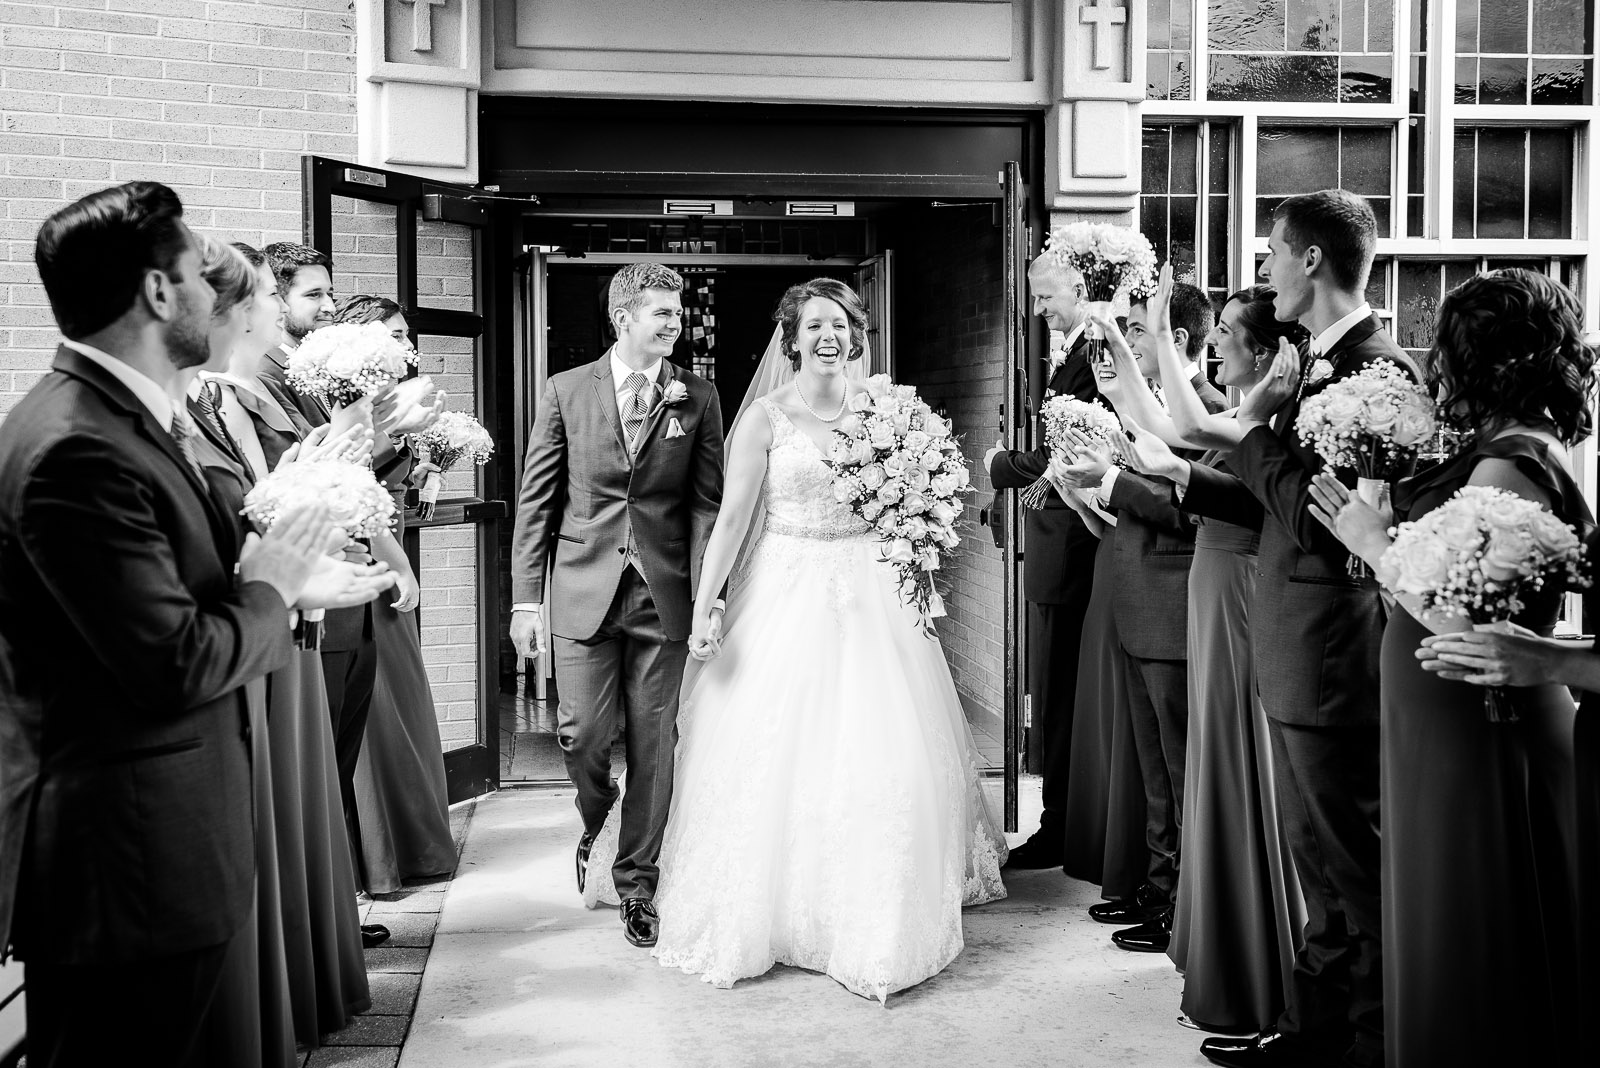 Eric_and_Christy_Photography_Blog_Wedding_Kelly_Michael-15